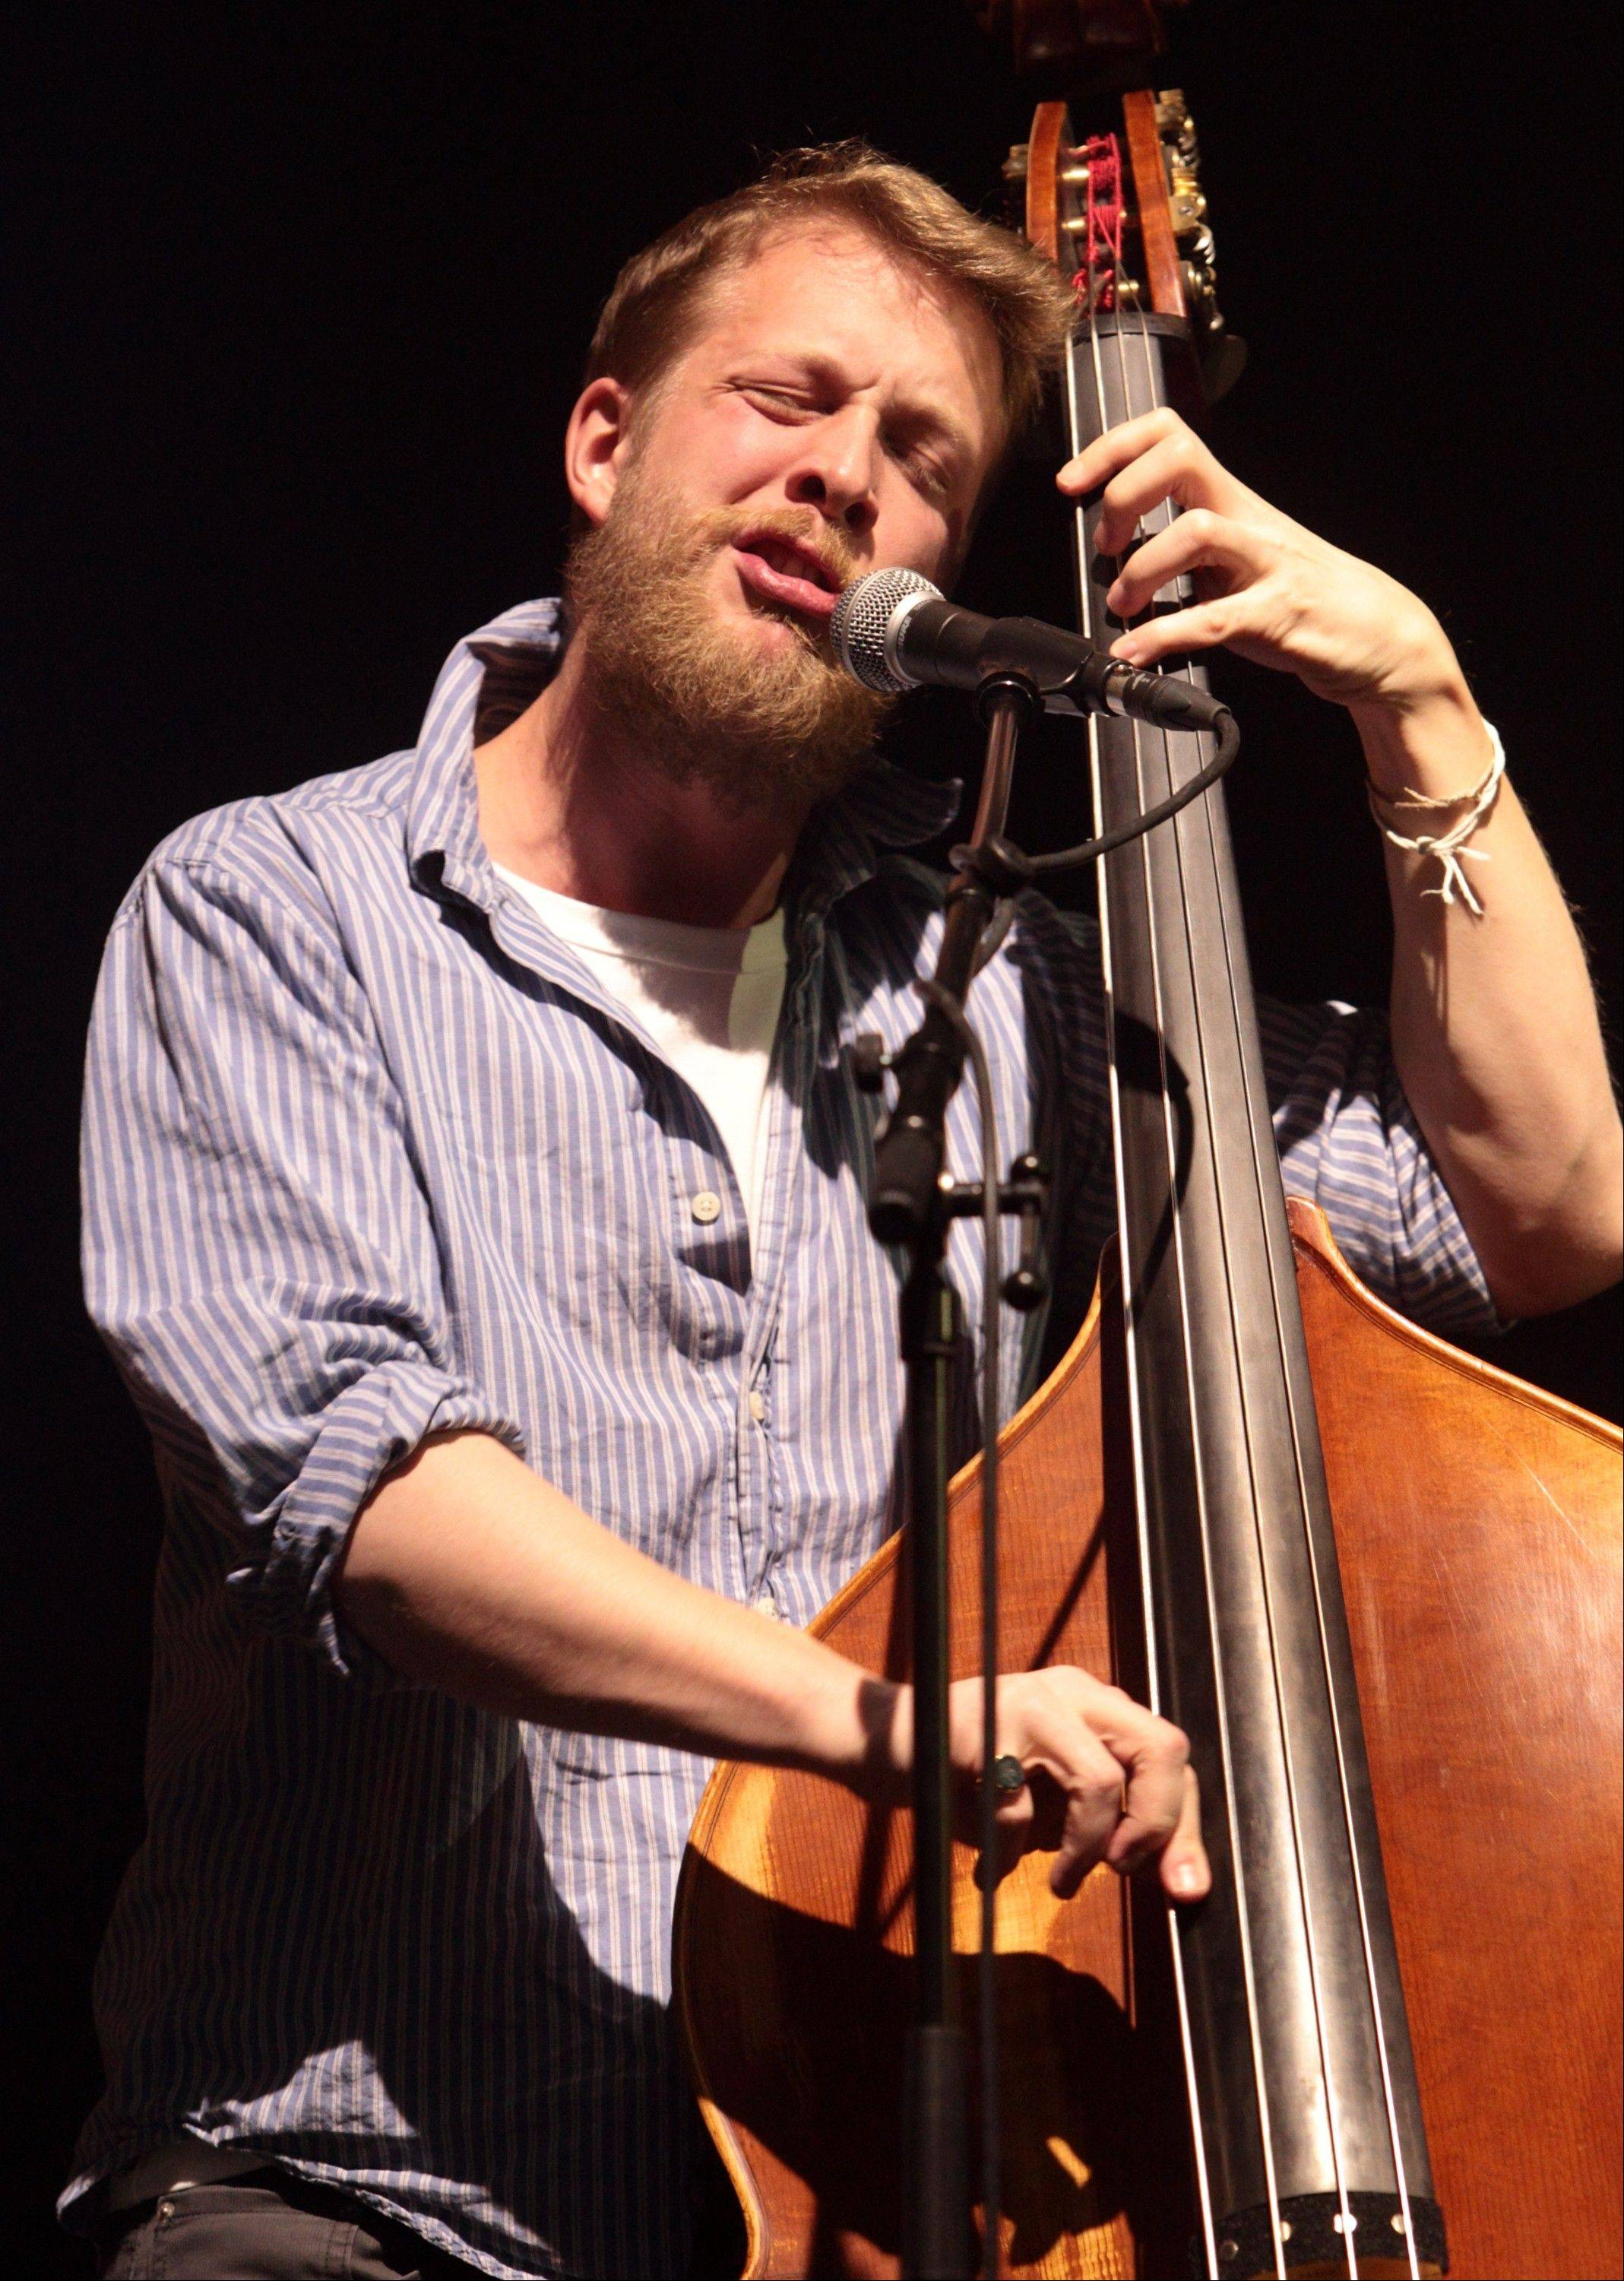 Ted Dwane, of the English folk rock band Mumford & Sons, performs at the Susquehanna Bank Center in Camden, N.J. Mumford & Sons on Thursday announced it has canceled its headlining performance at Bonnaroo Music & Arts Festival in Tennessee. The decision comes after Dwane received treatment this week for a blood clot on his brain.